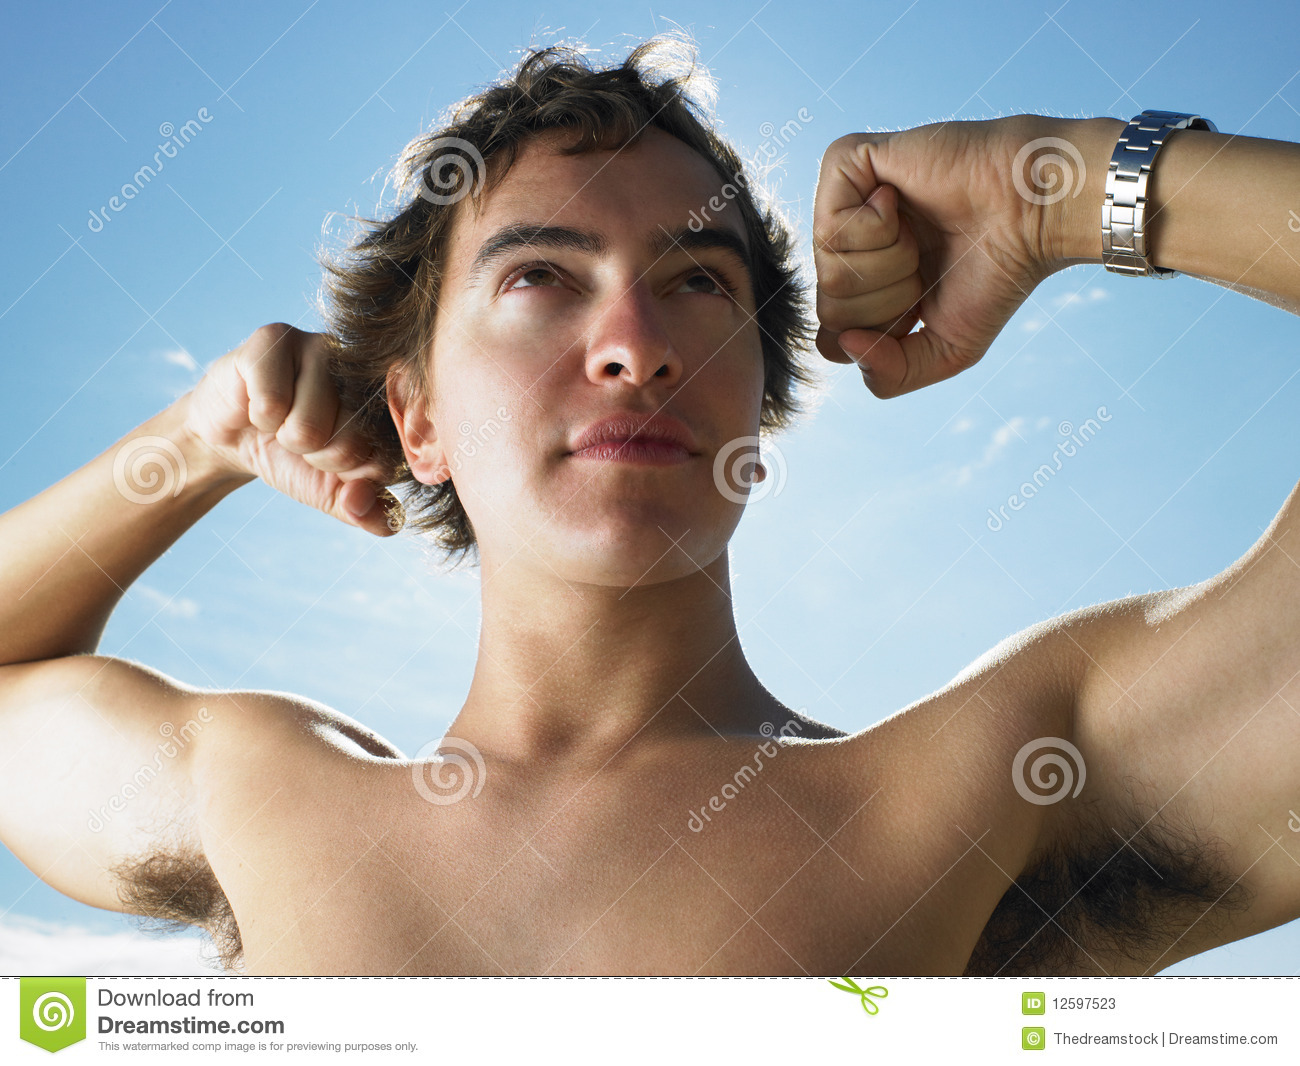 Stock Photos: Young Man Flexing Muscles